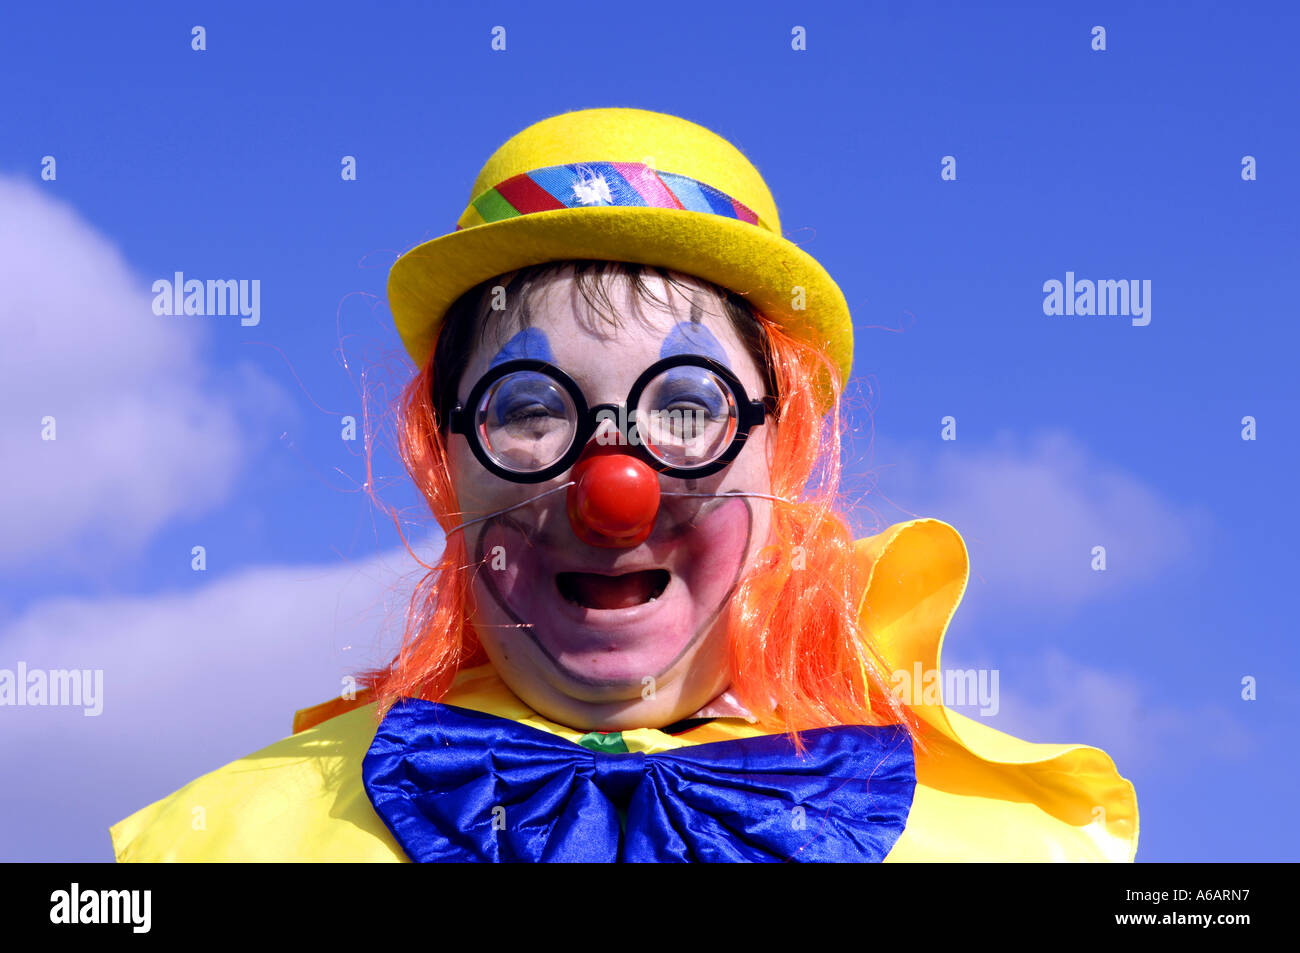 Carnival Karneval Clown Kid Boy Stock Photos Carnival Karneval